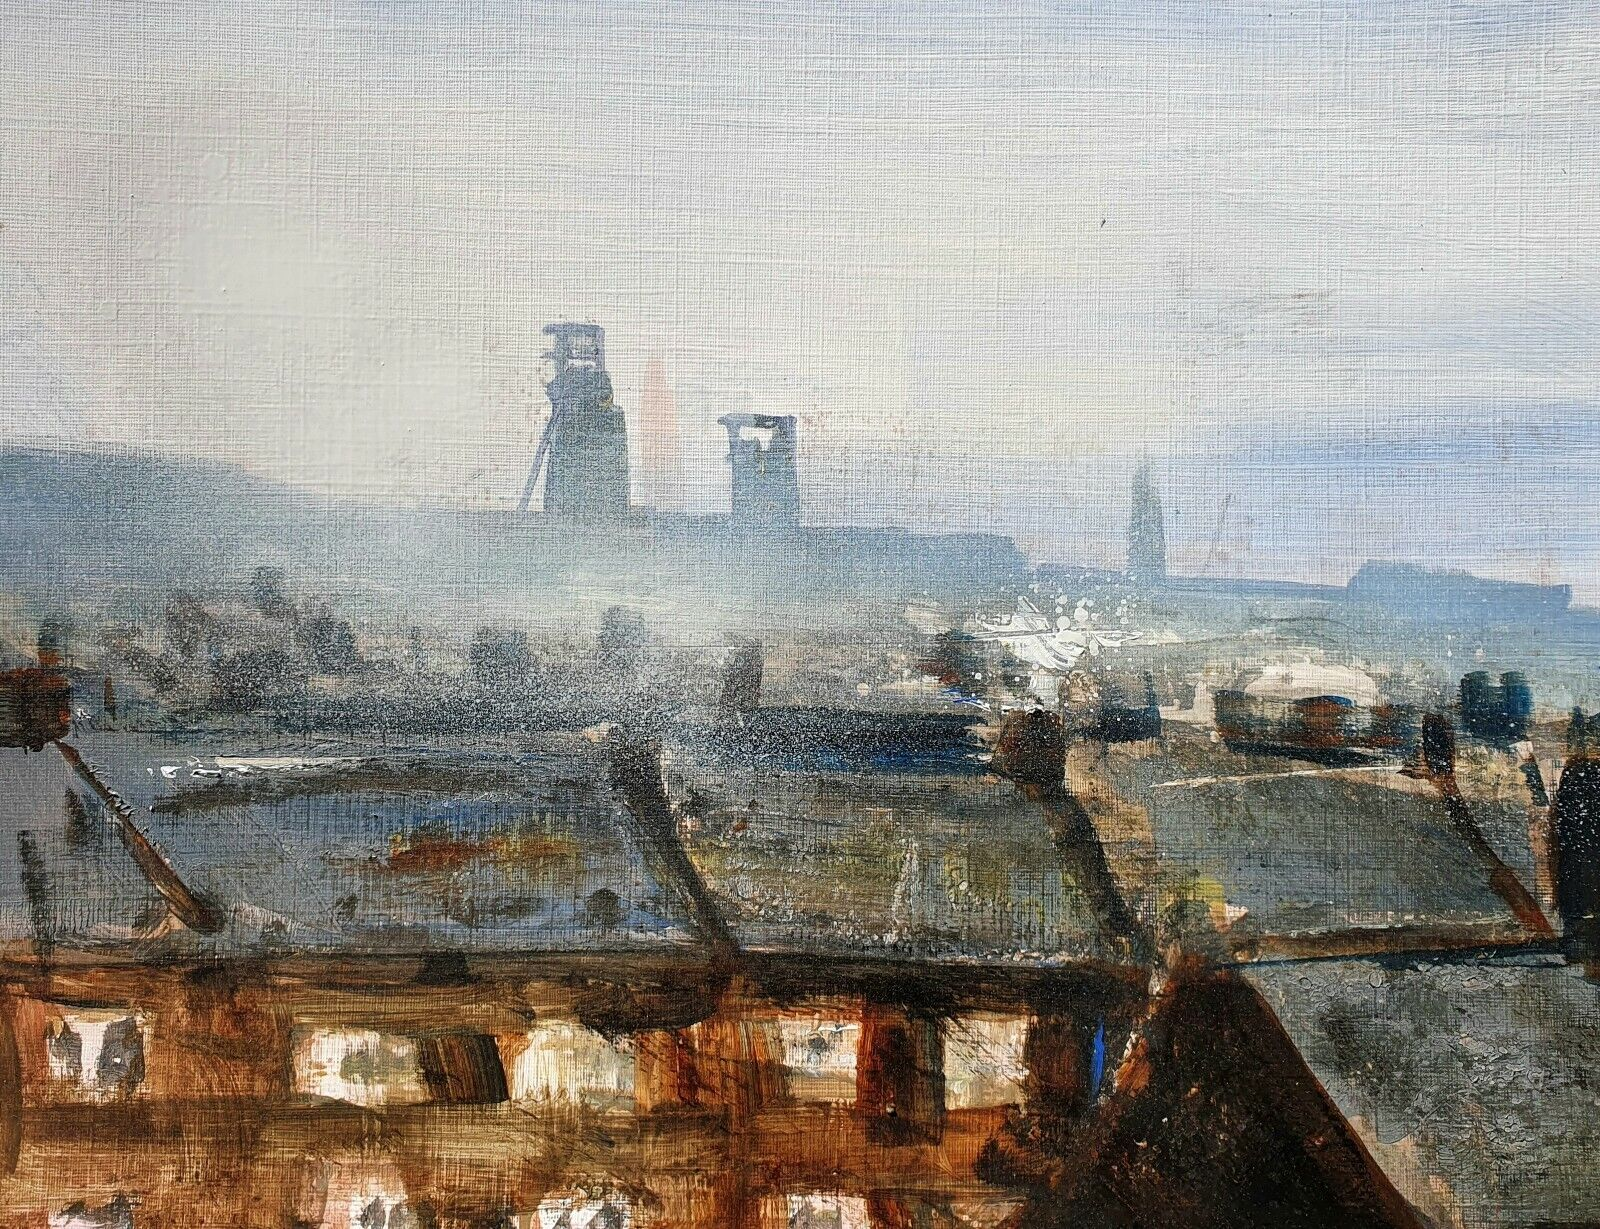 Industrial Scenes Z7. Original Mixed Media Painting on Paper